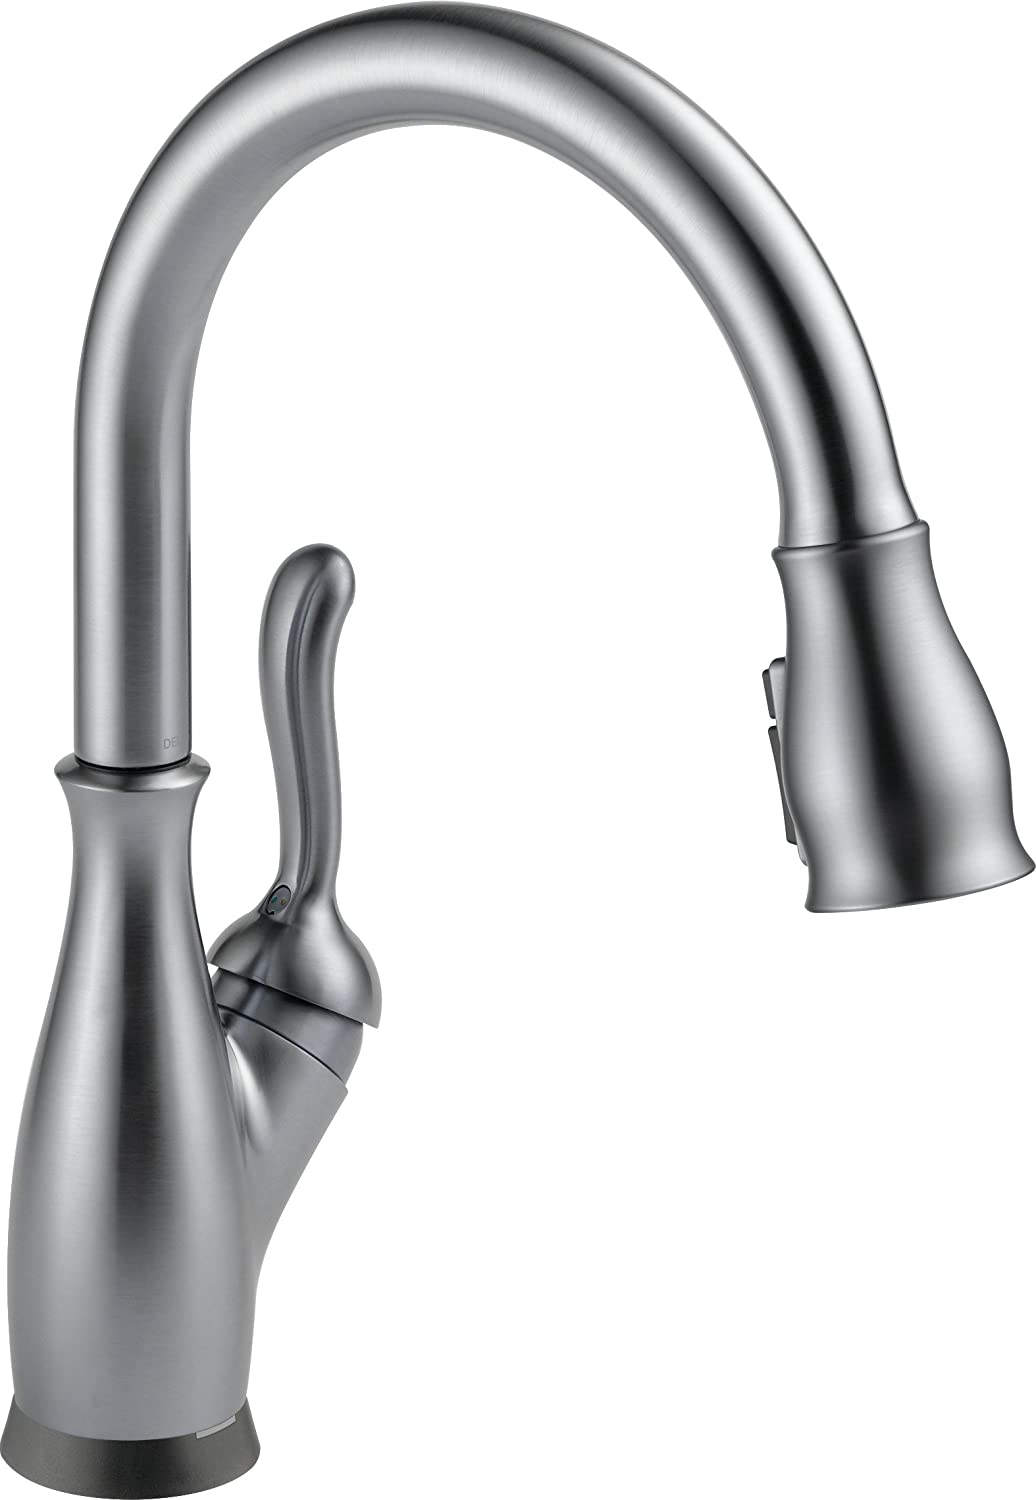 Best Kitchen Faucets - Reviews & Buying Guide 2021